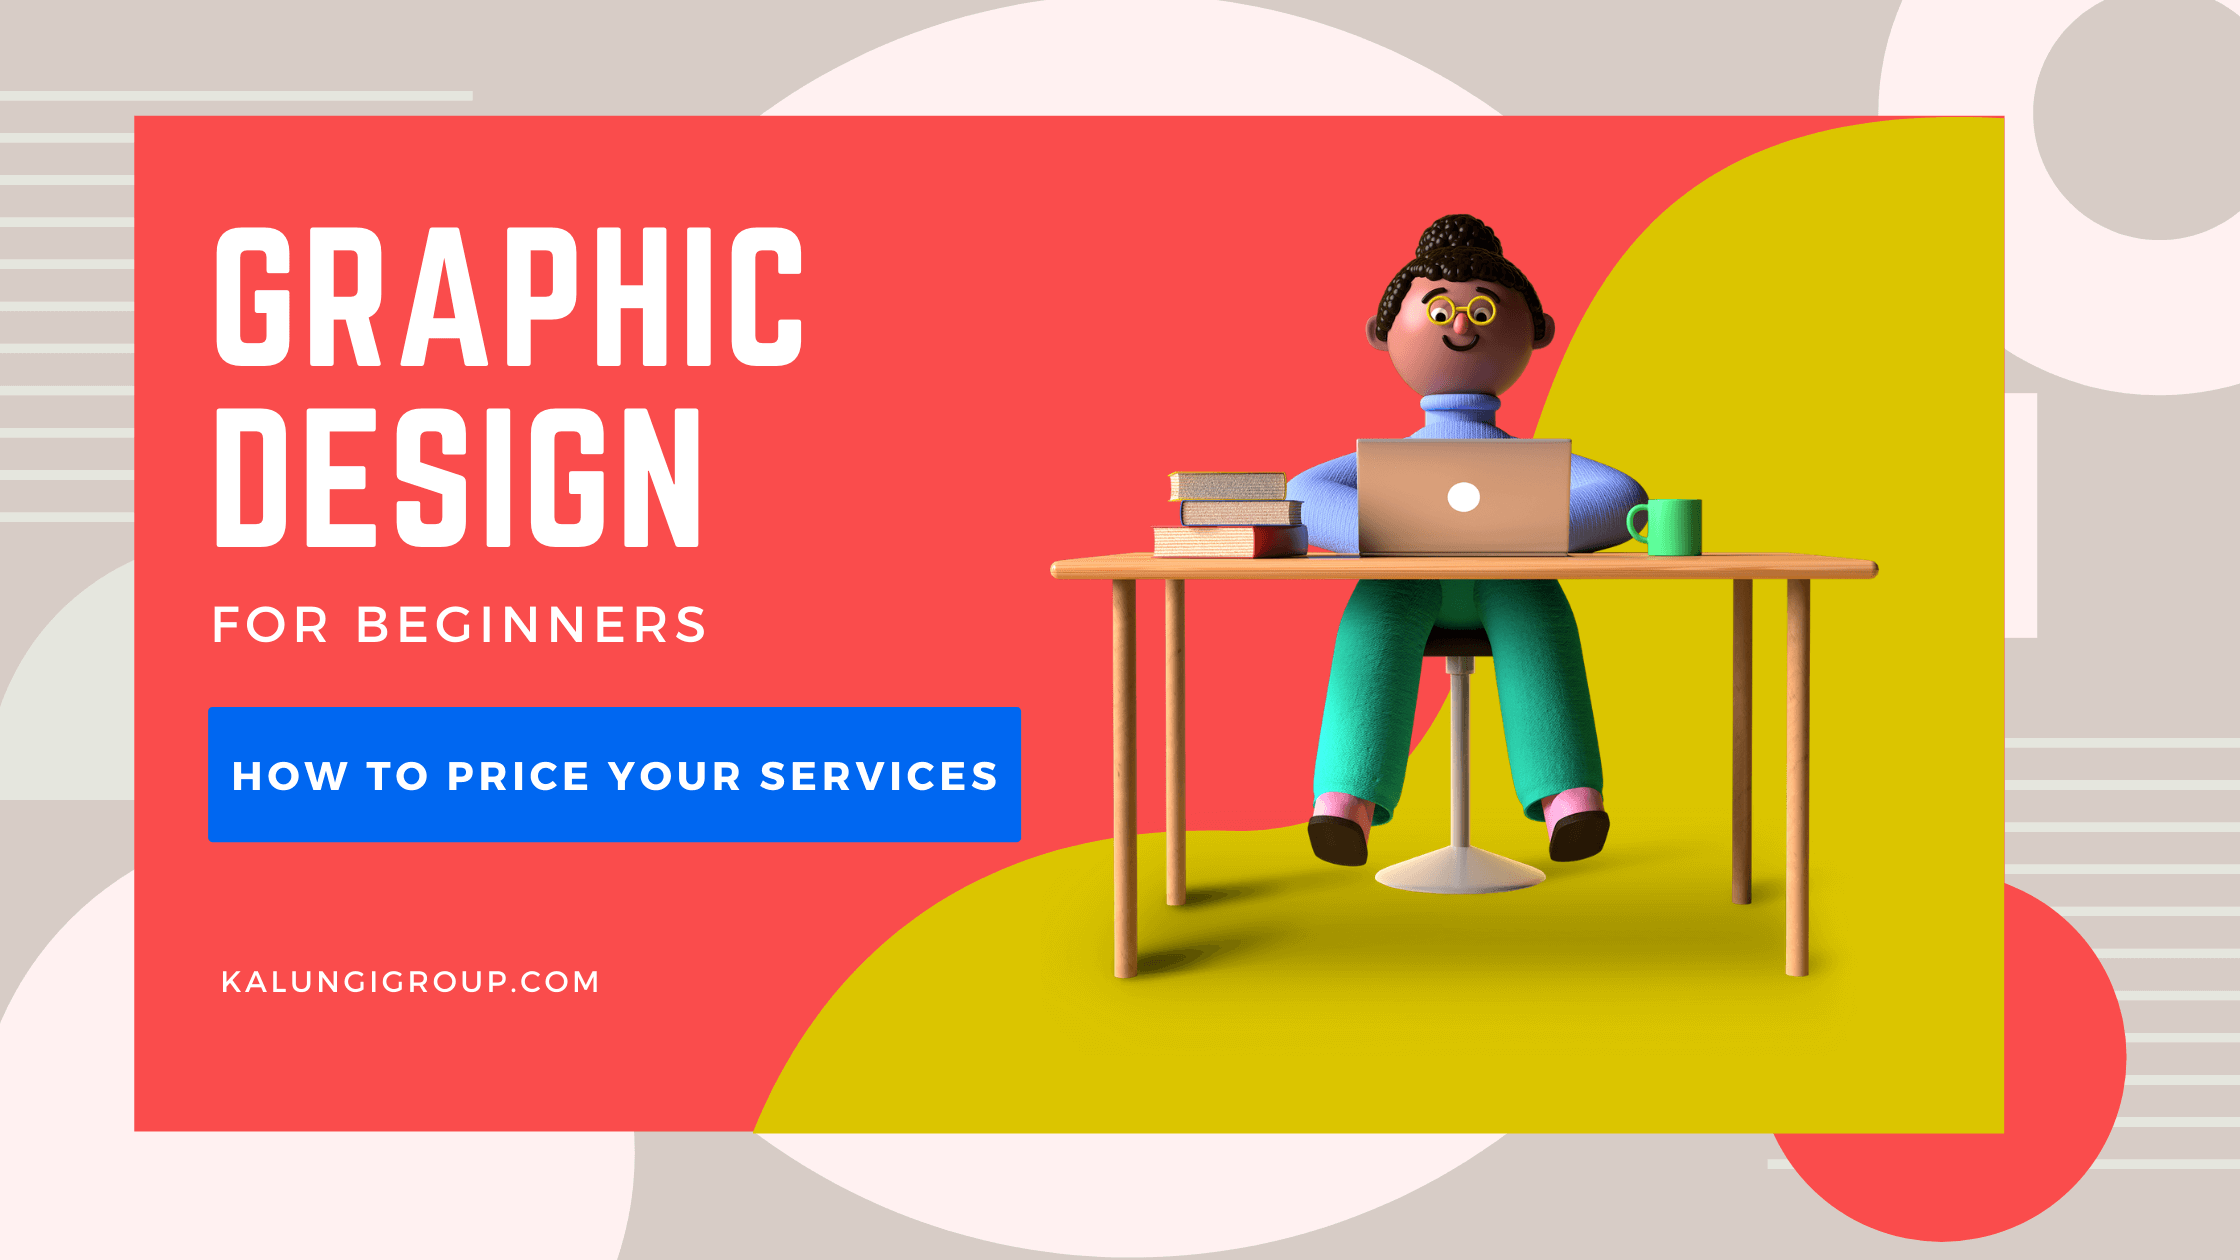 How to Price Graphics Design Services